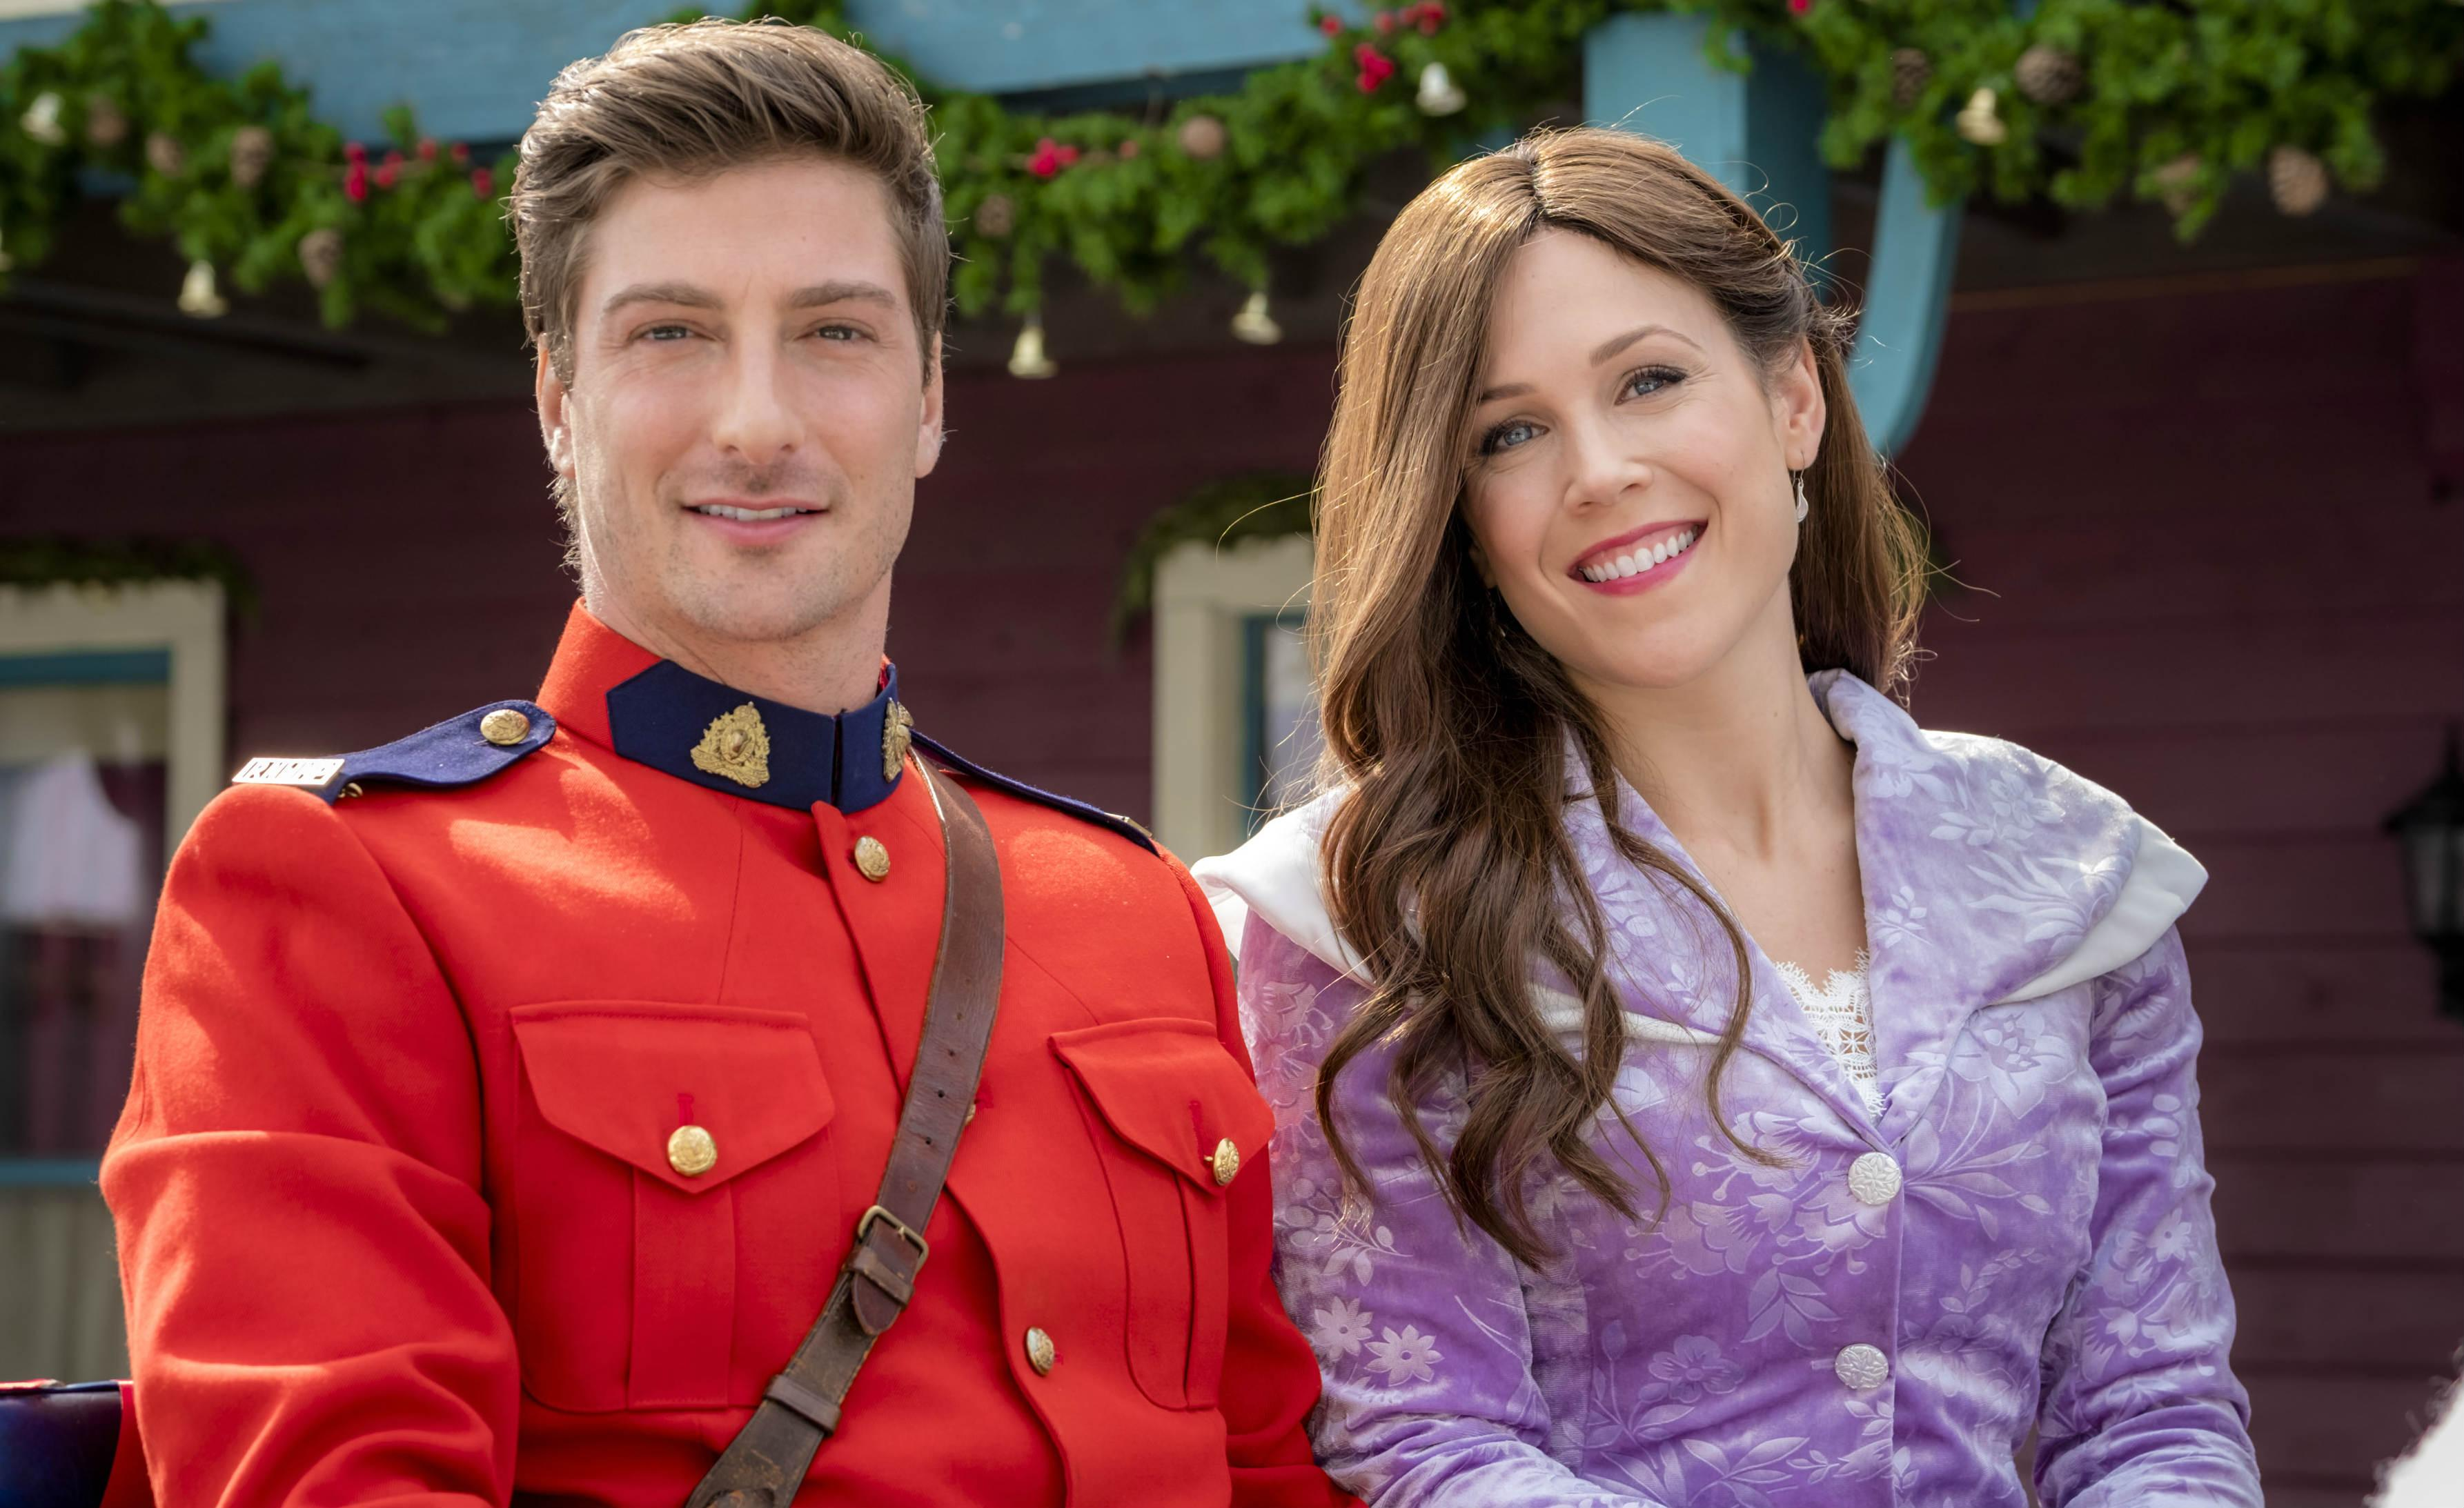 Hallmark Channel When Calls The Heart Christmas Wishing Tree Premiere Cast Trailer